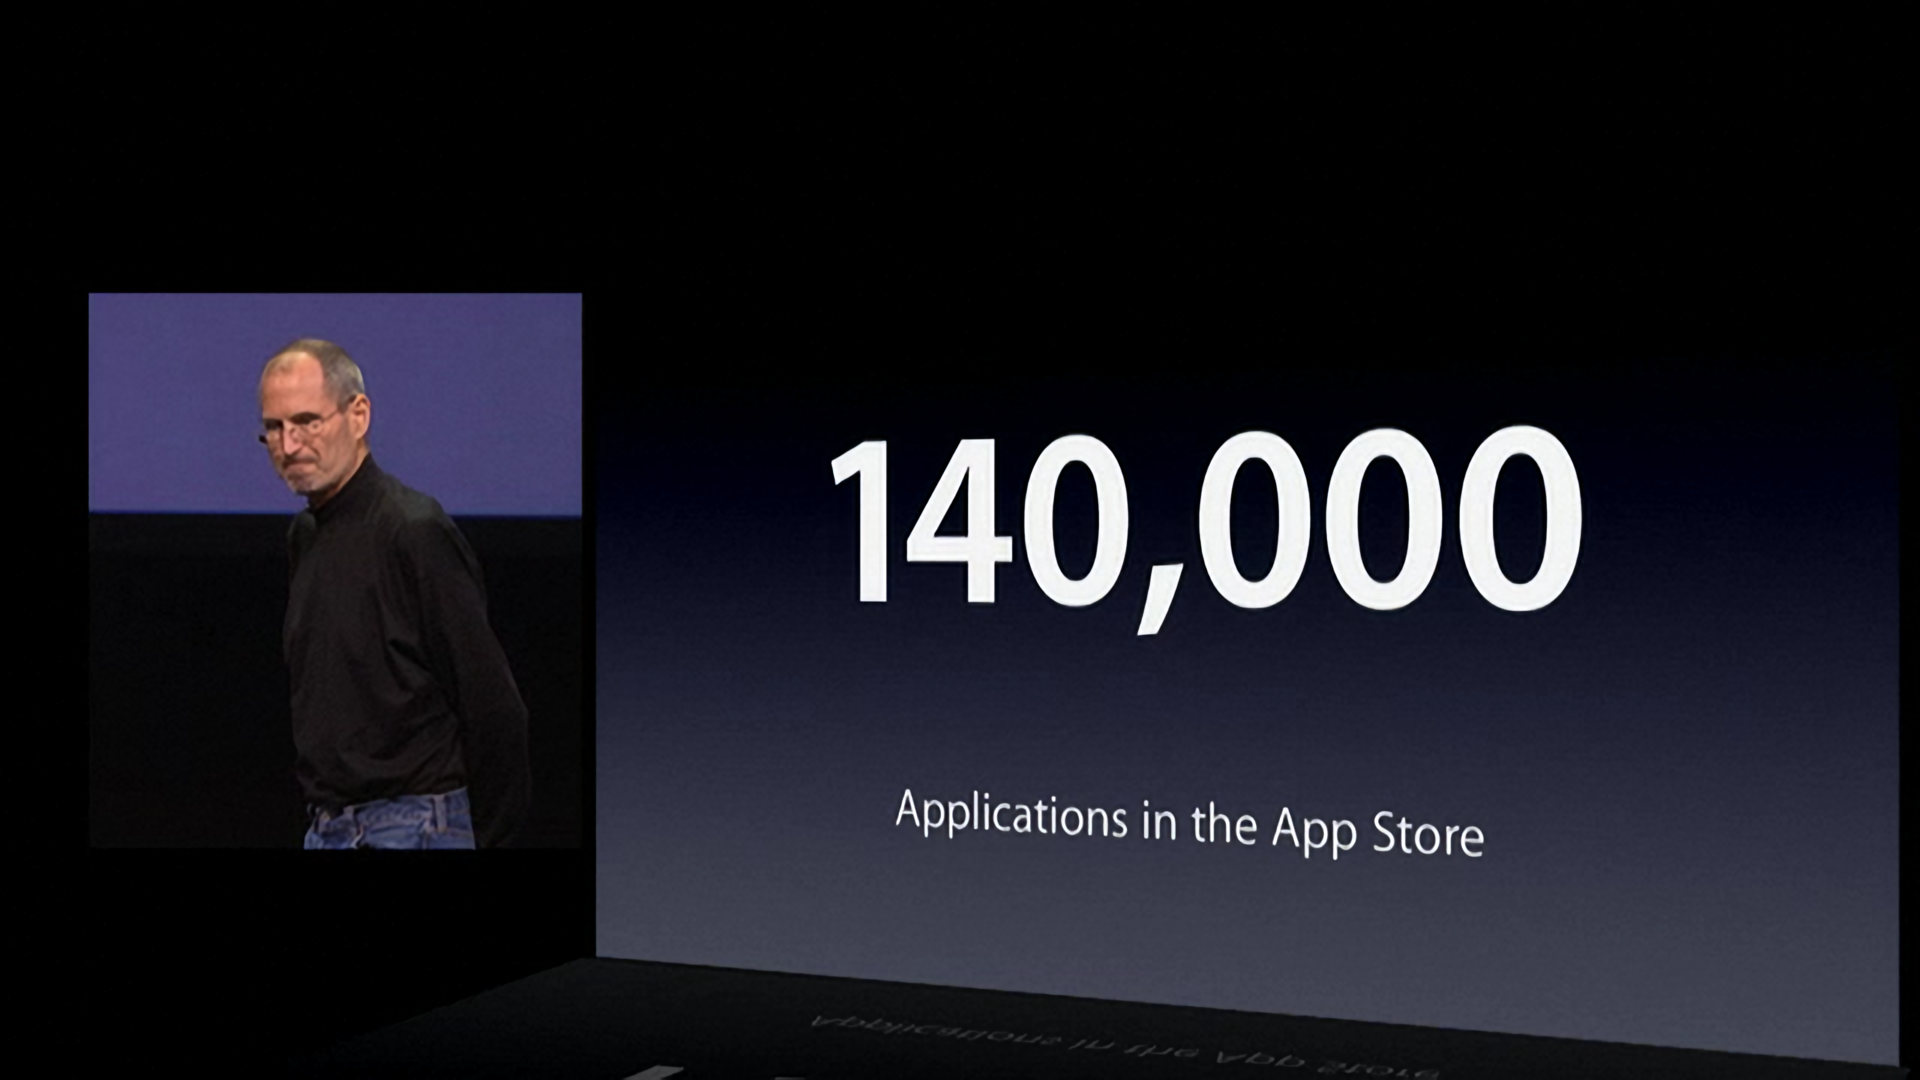 After only 18 months, there were 140,000 apps on the App Store that customers had downloaded over three billion times.